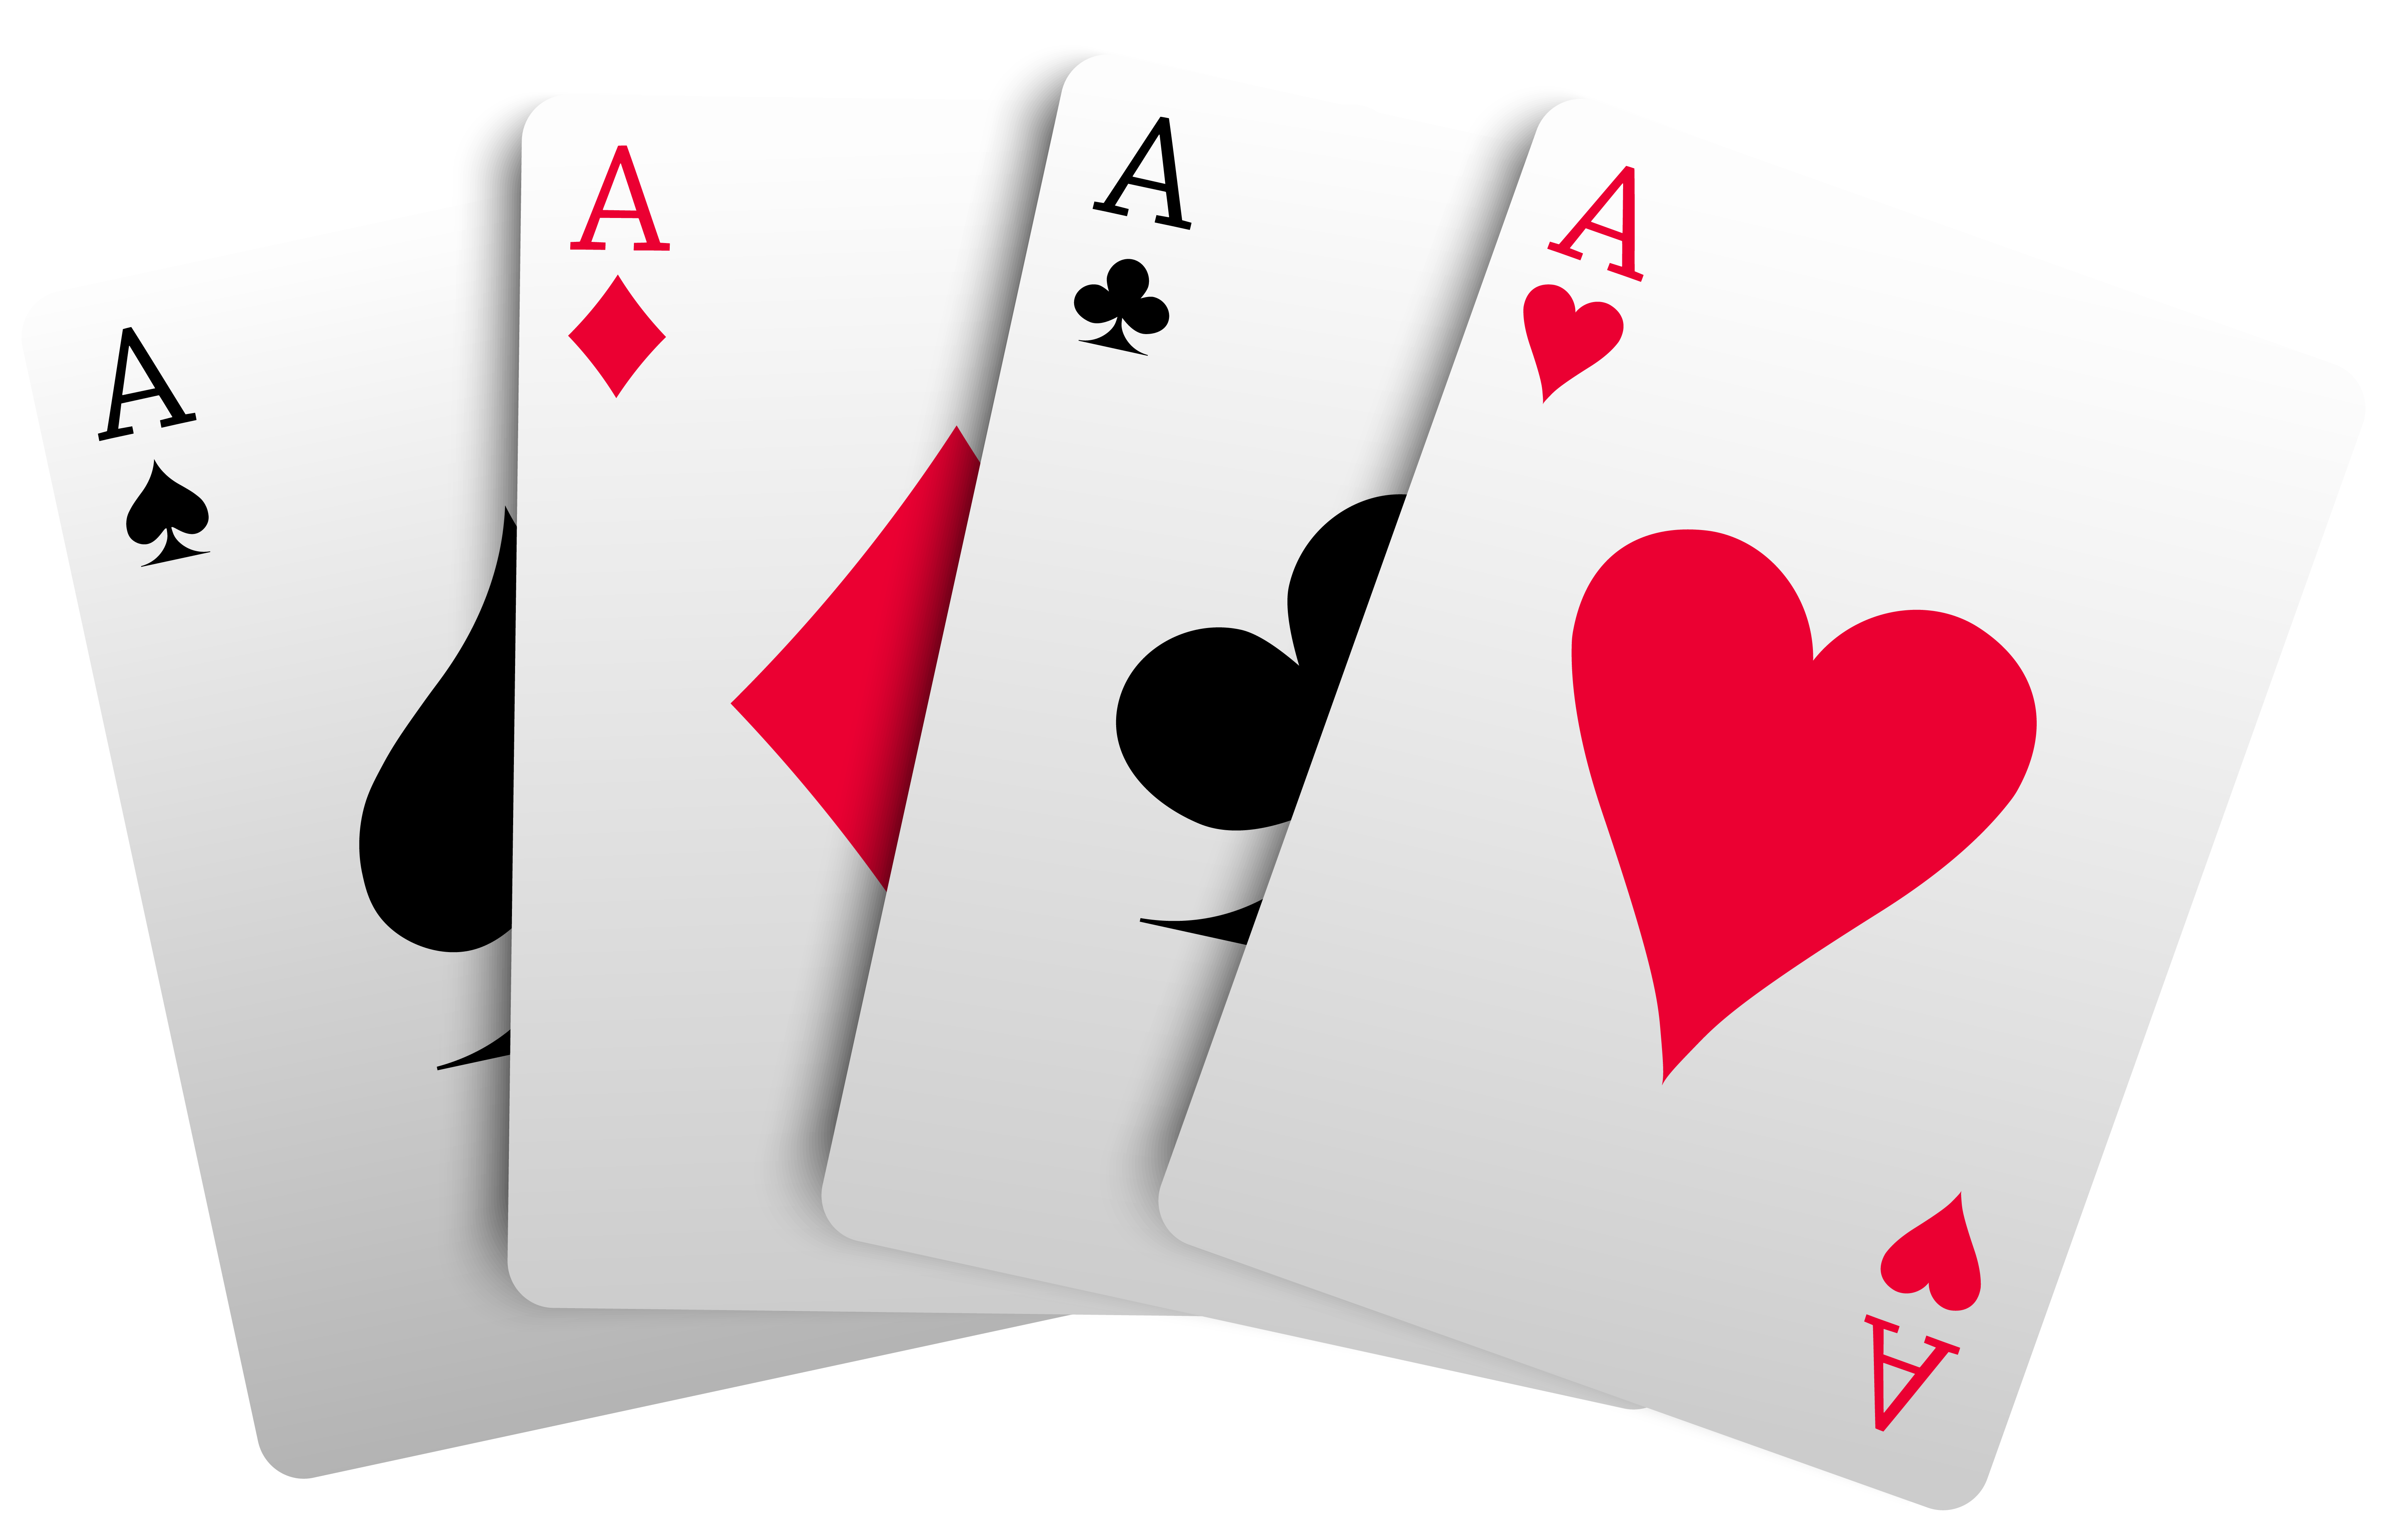 4 Aces Cards PNG Clipart.